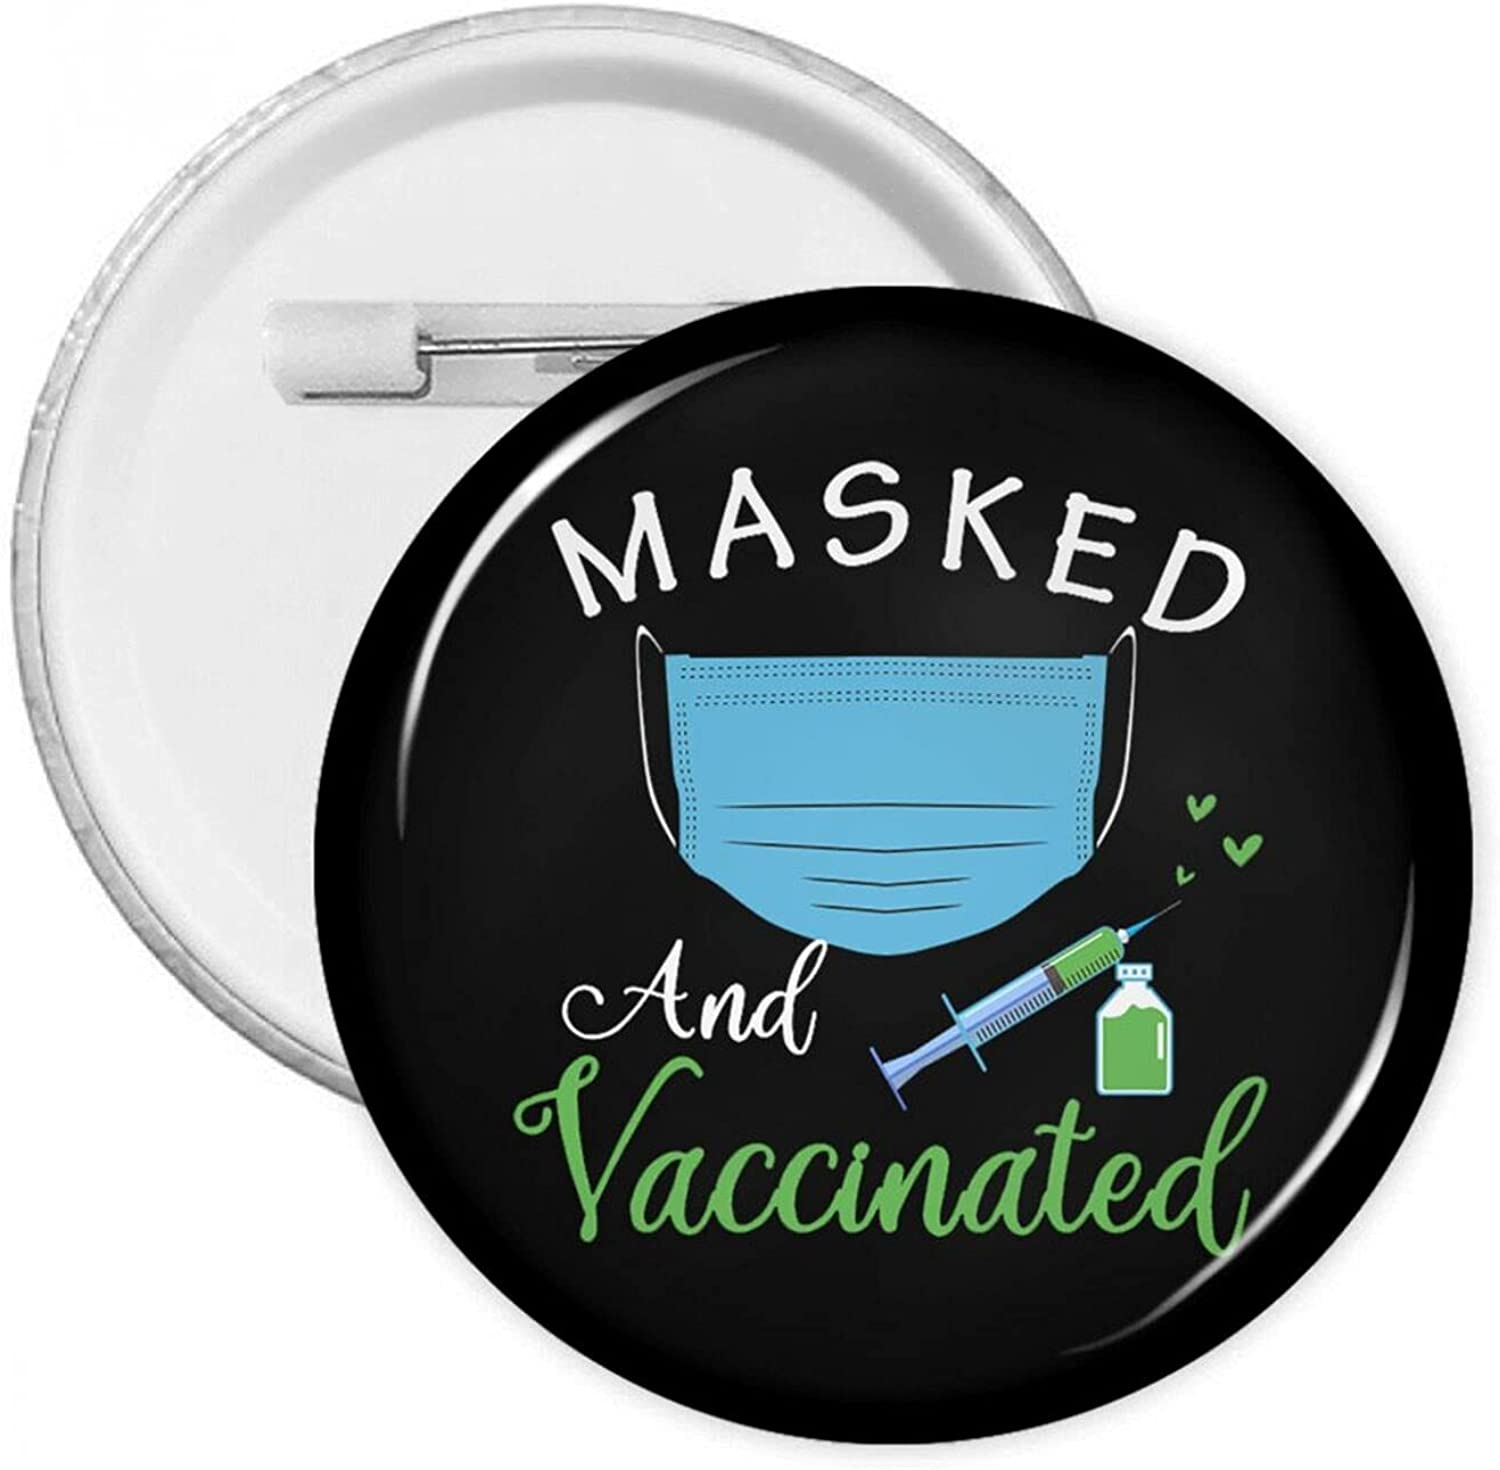 Masked Purchase And Vaccinated 1 Pin Party New Free Shipping Decor Recognition Button Badge